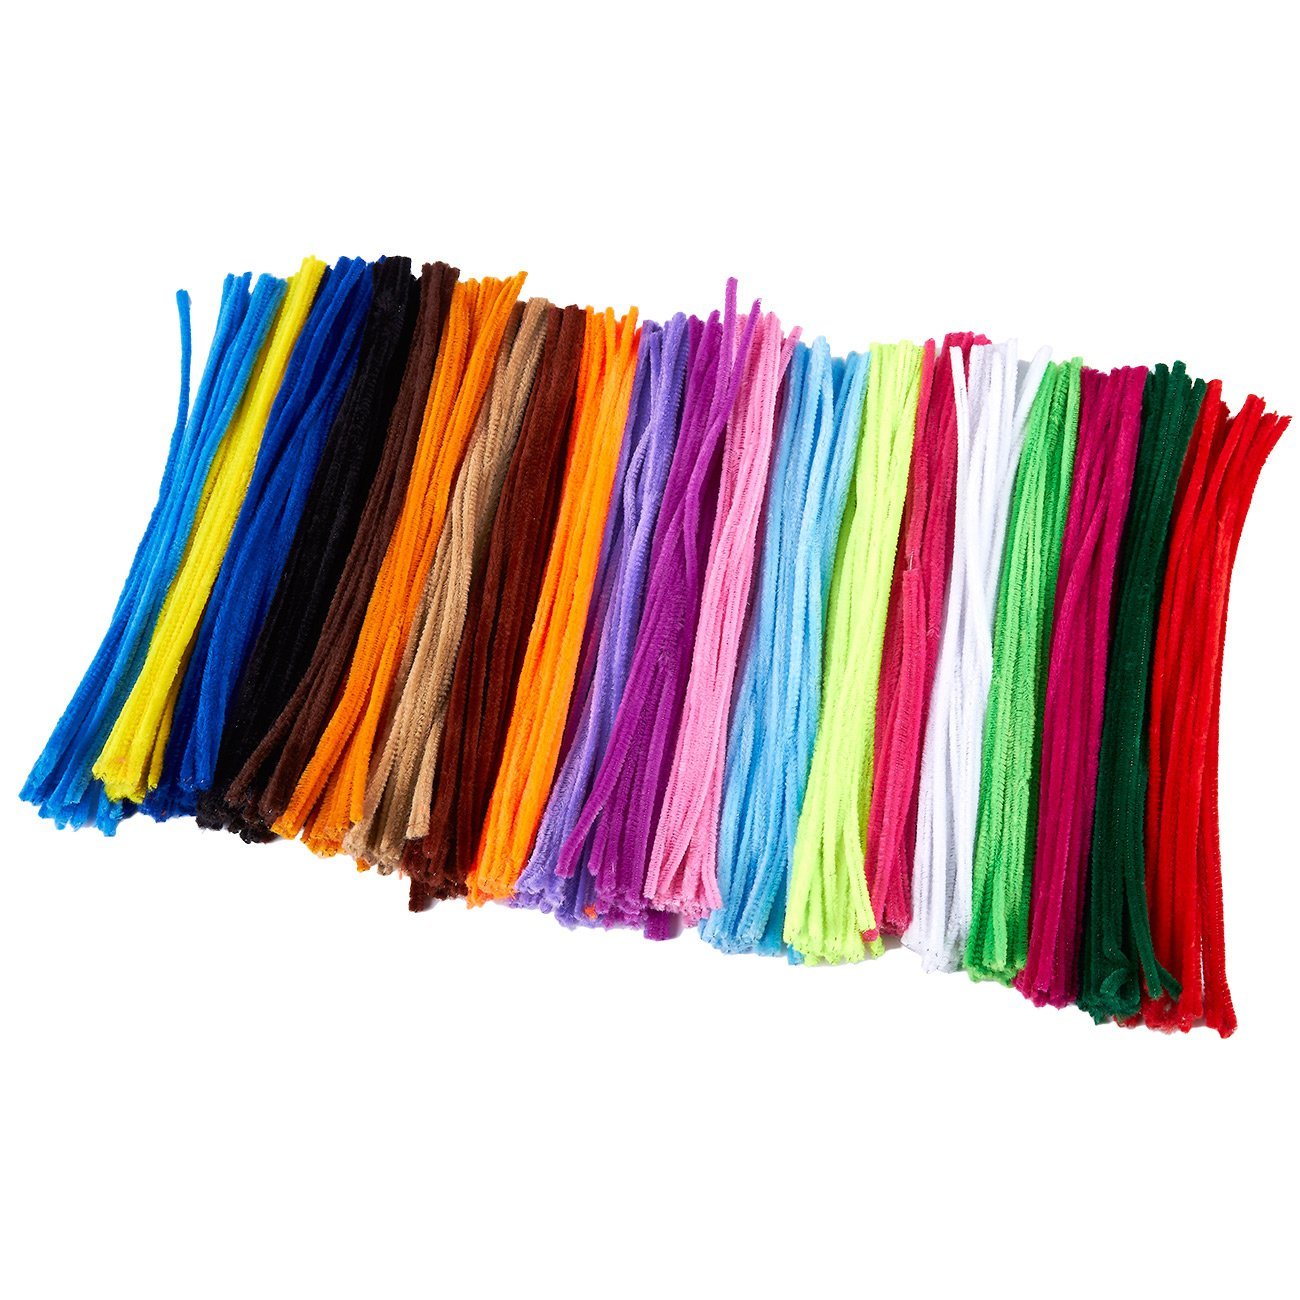 Pipe Cleaners - 500-Count Chenille Stems for DIY Craft Projects, Creative Decorations, Kid Art Supplies, 20 Colors, 6 mm x 12 inches